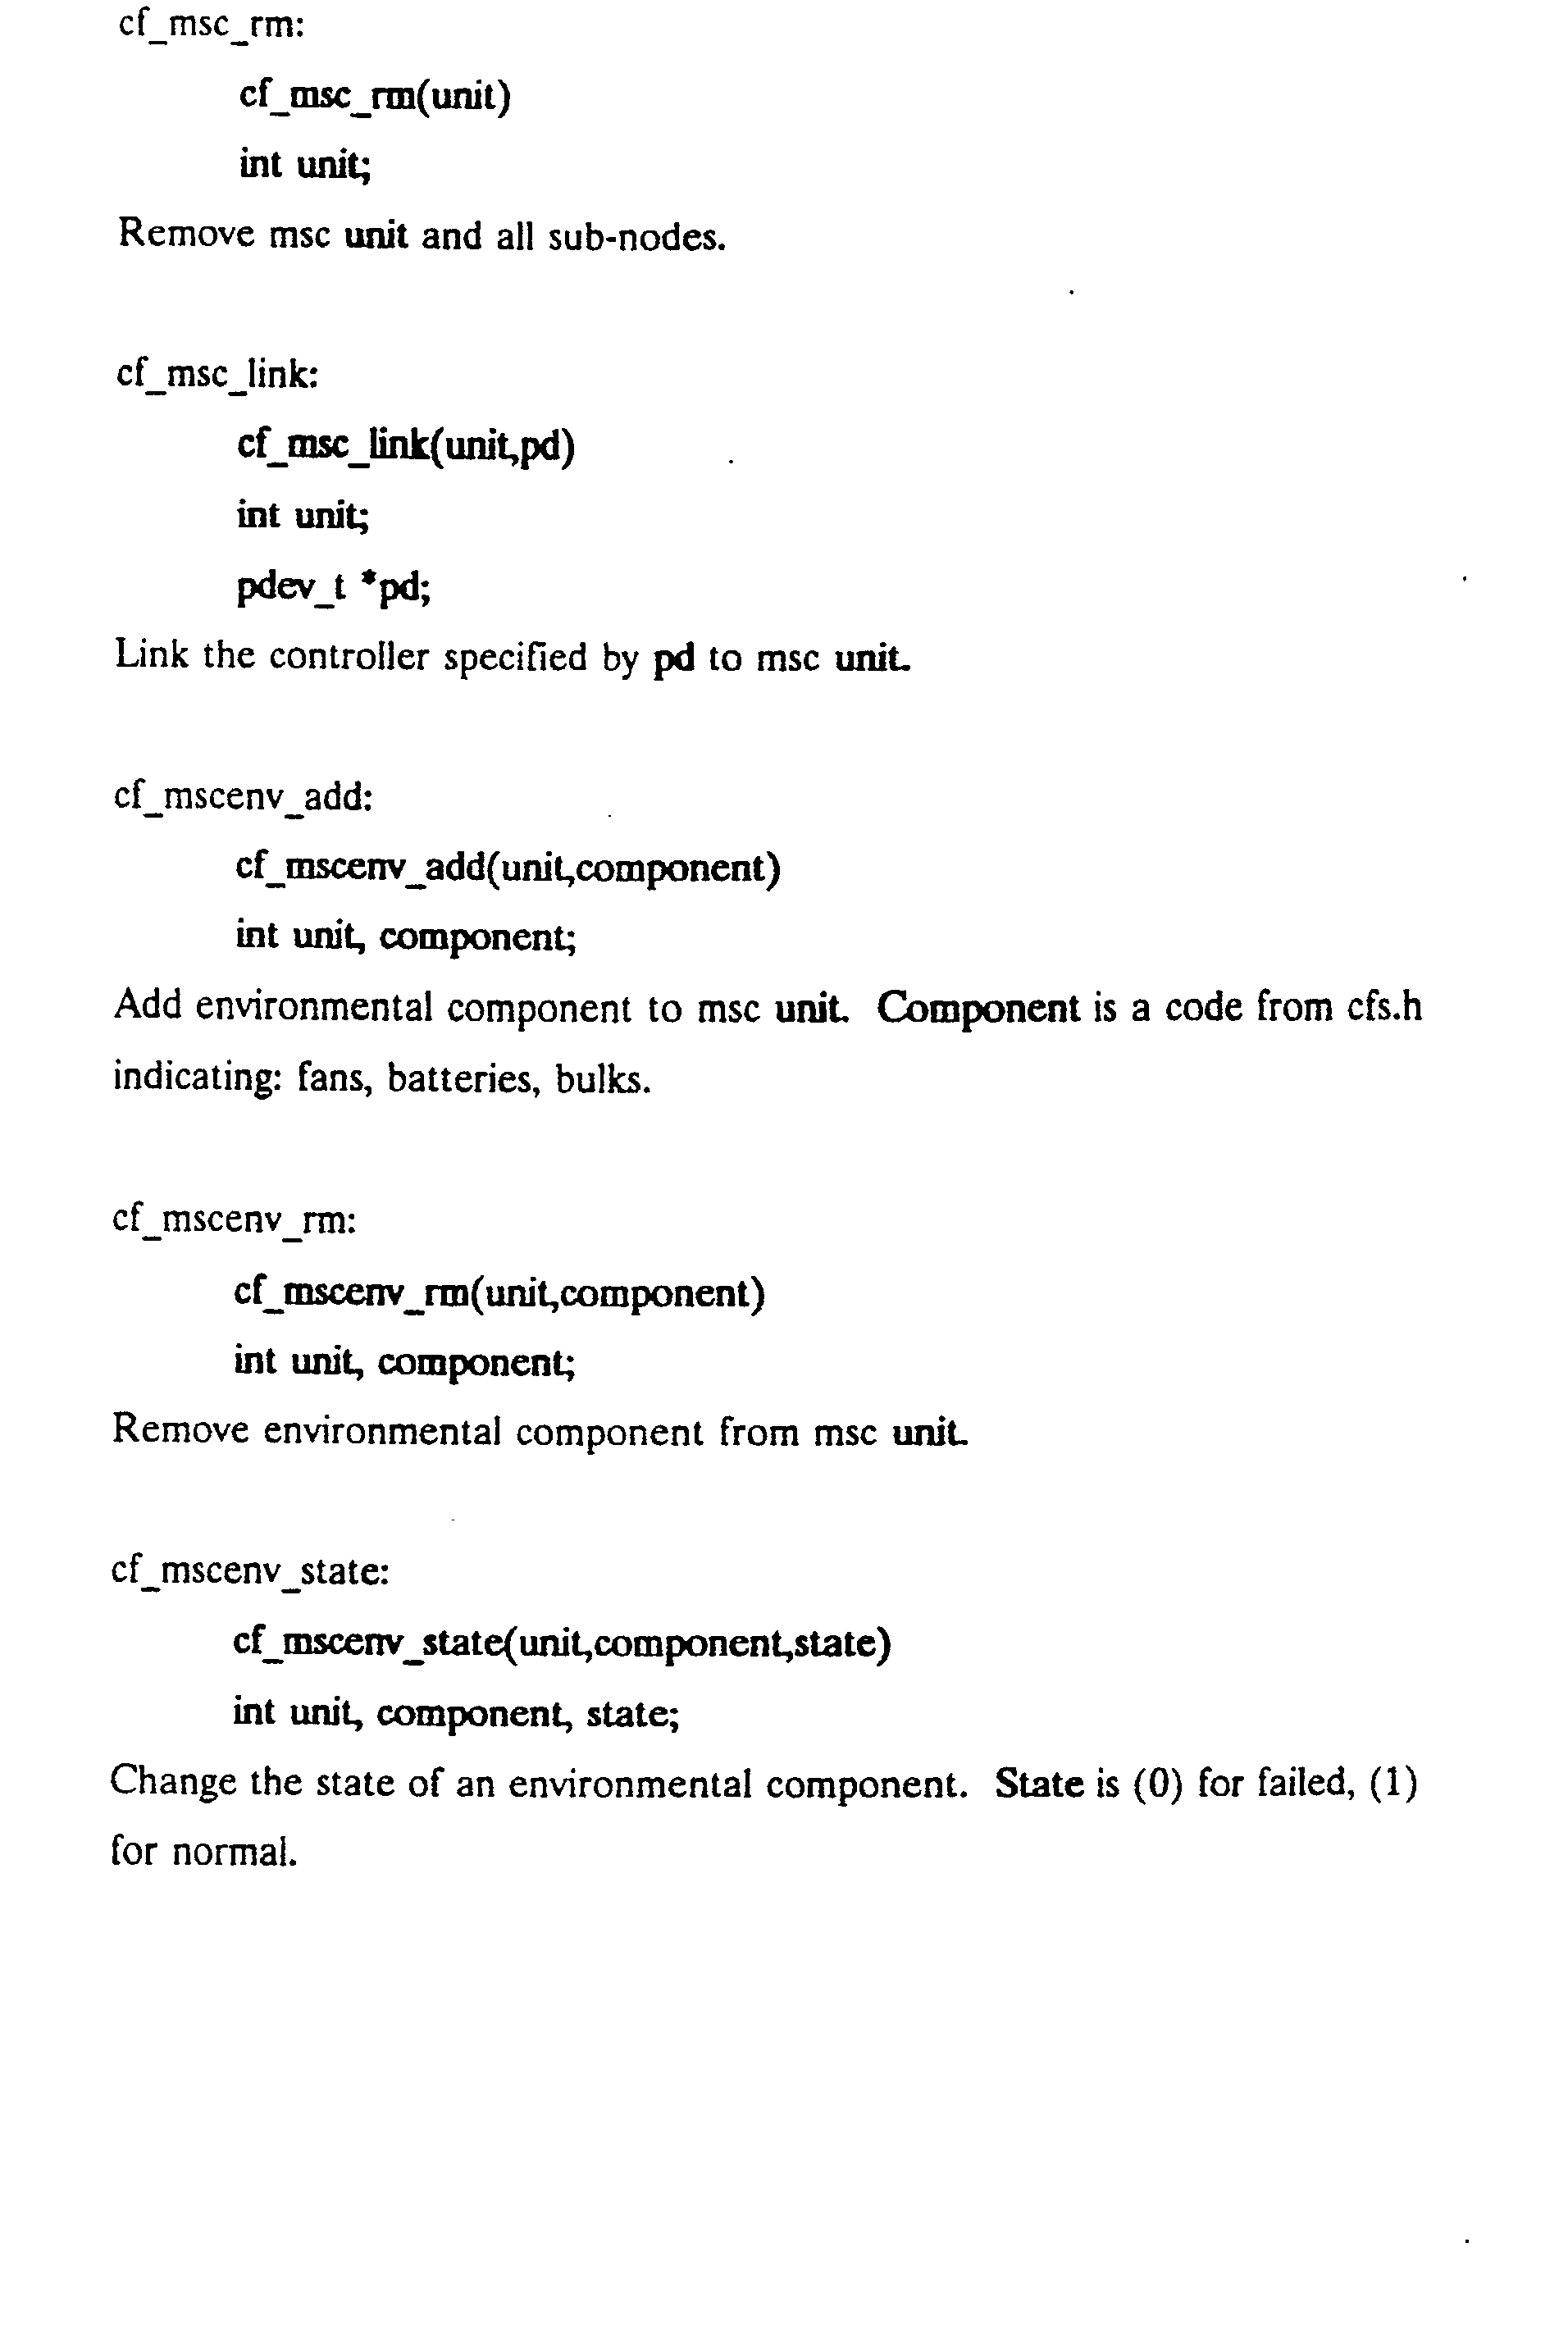 EP0433979A2 - Fault-tolerant computer system with/config filesystem